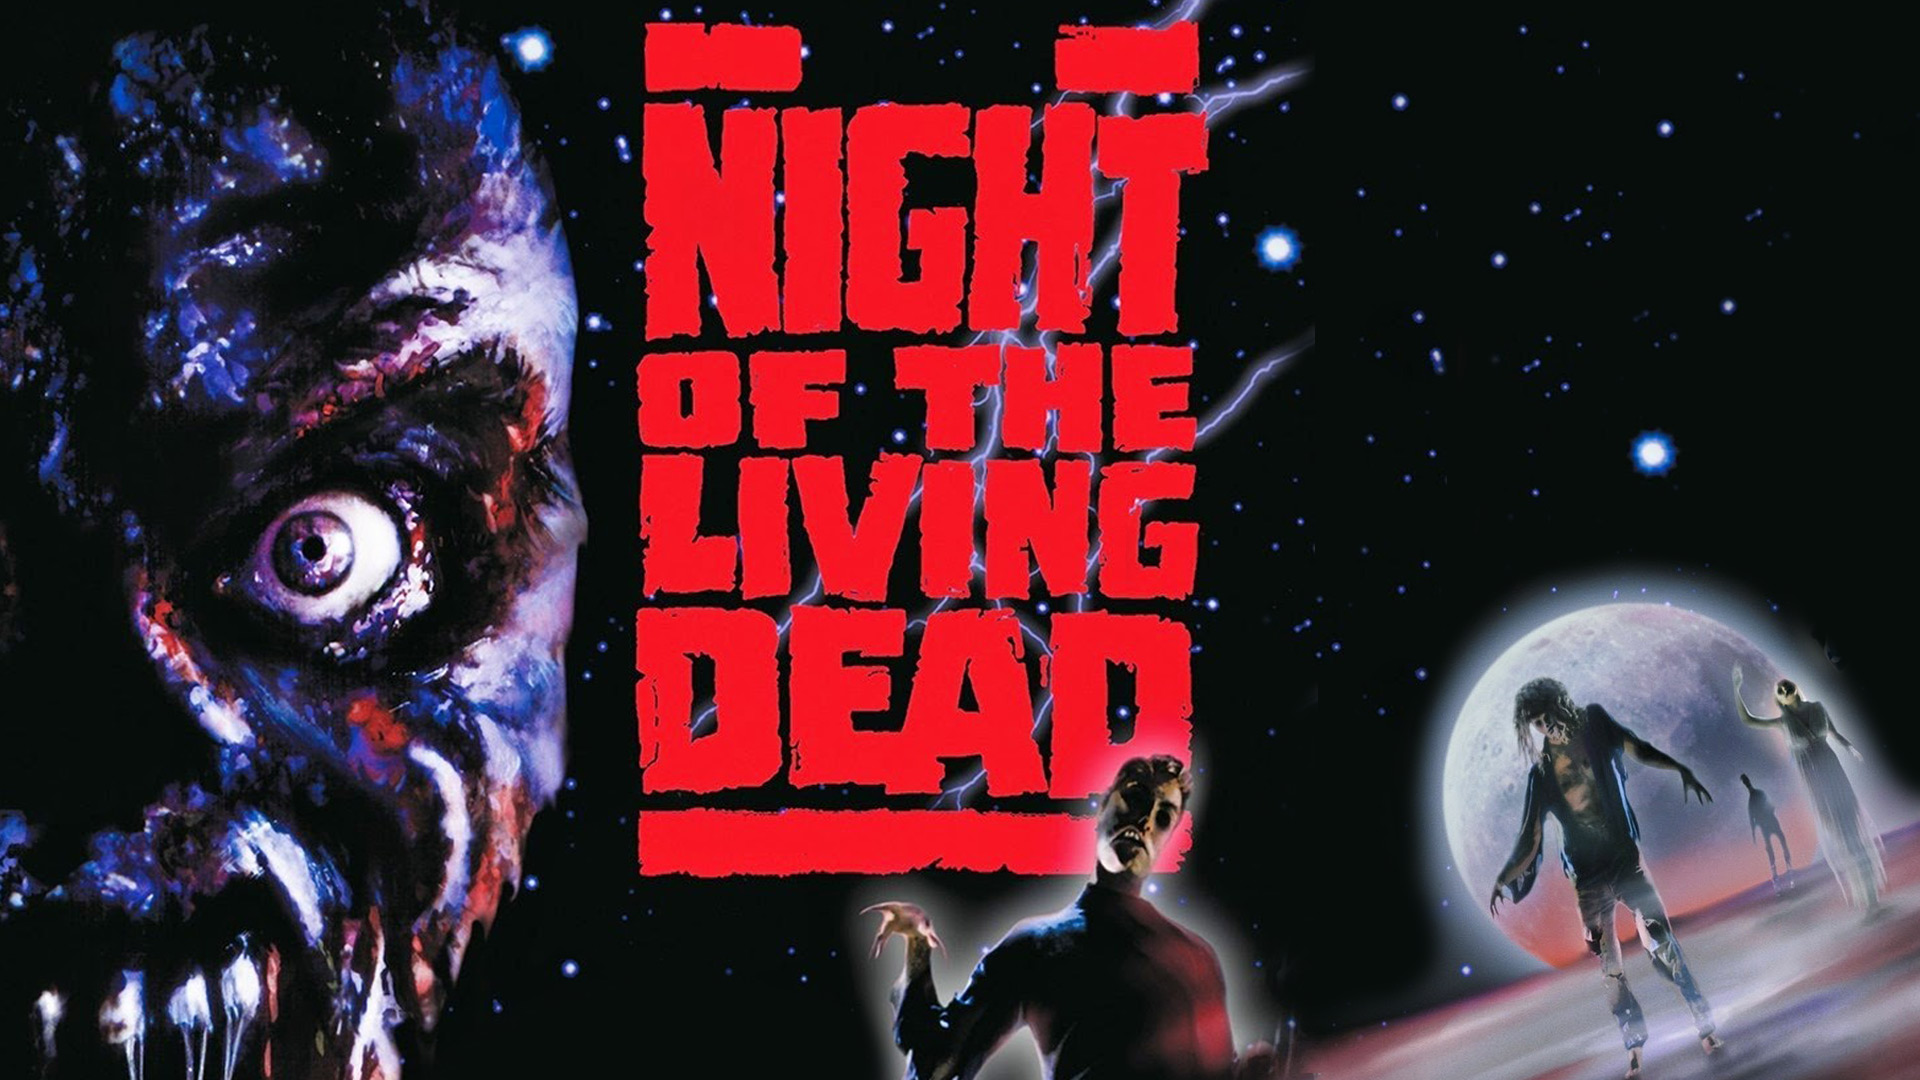 Amazon.com: Watch Night of the Living Dead - Digitally Remastered ...